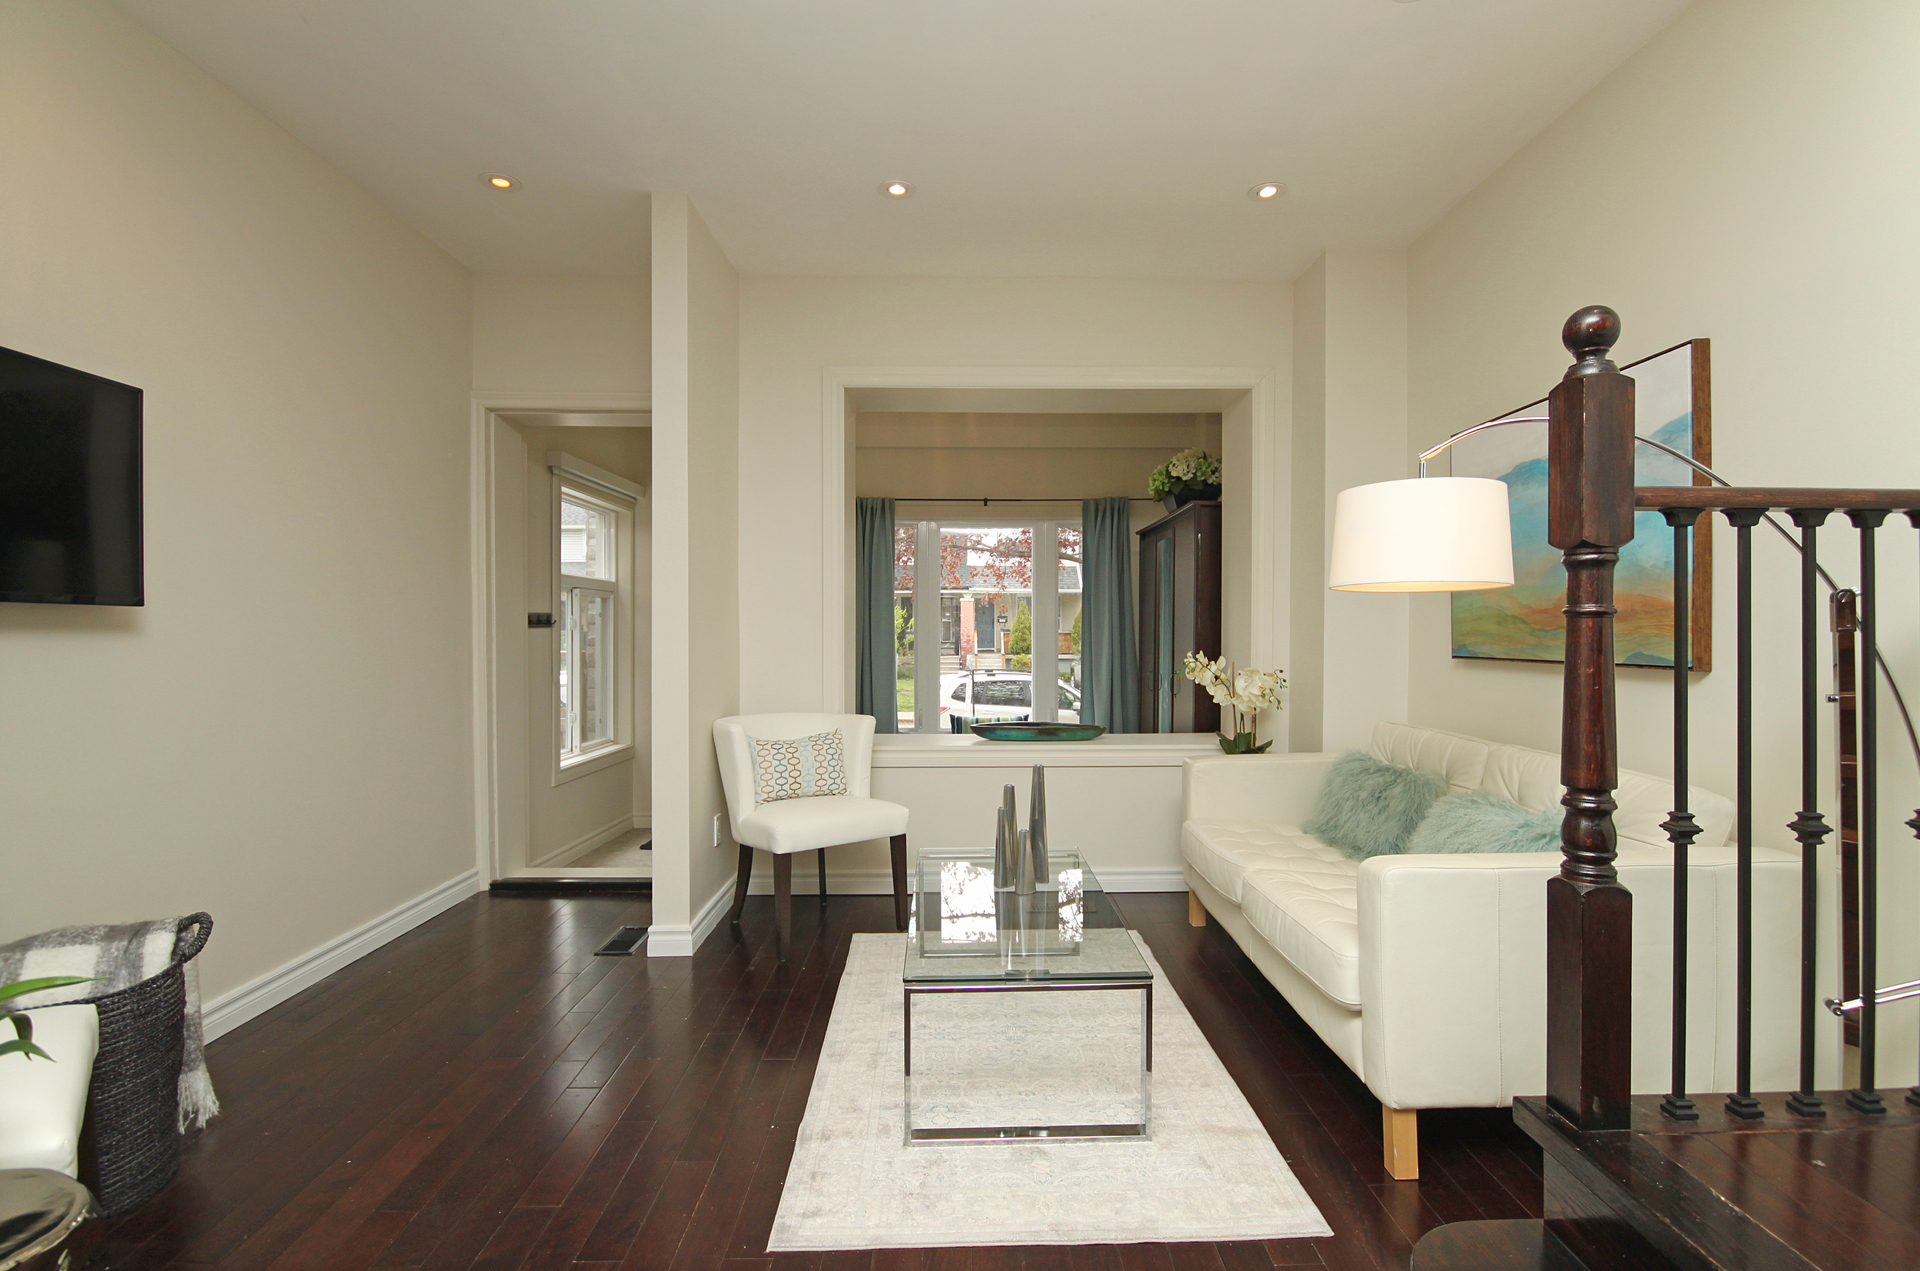 Living Room at 241 Milverton Boulevard, Danforth, Toronto